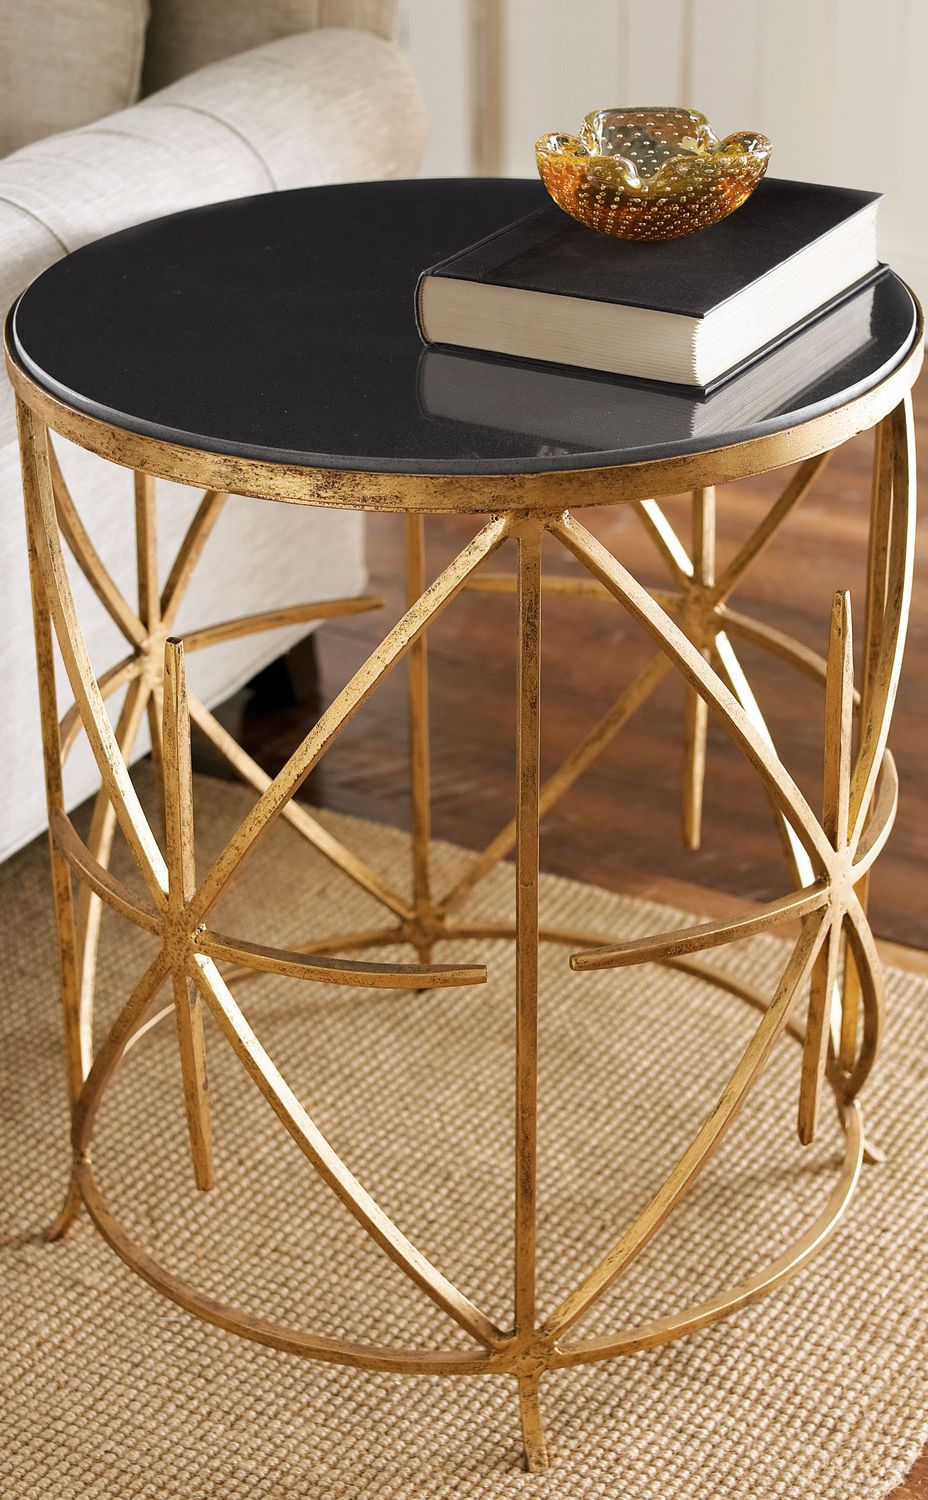 home decor living room table and furniture small gold accent granite top side west elm elephant lamp glass door cabinet person bar double vanity bedroom ideas cordless lamps white